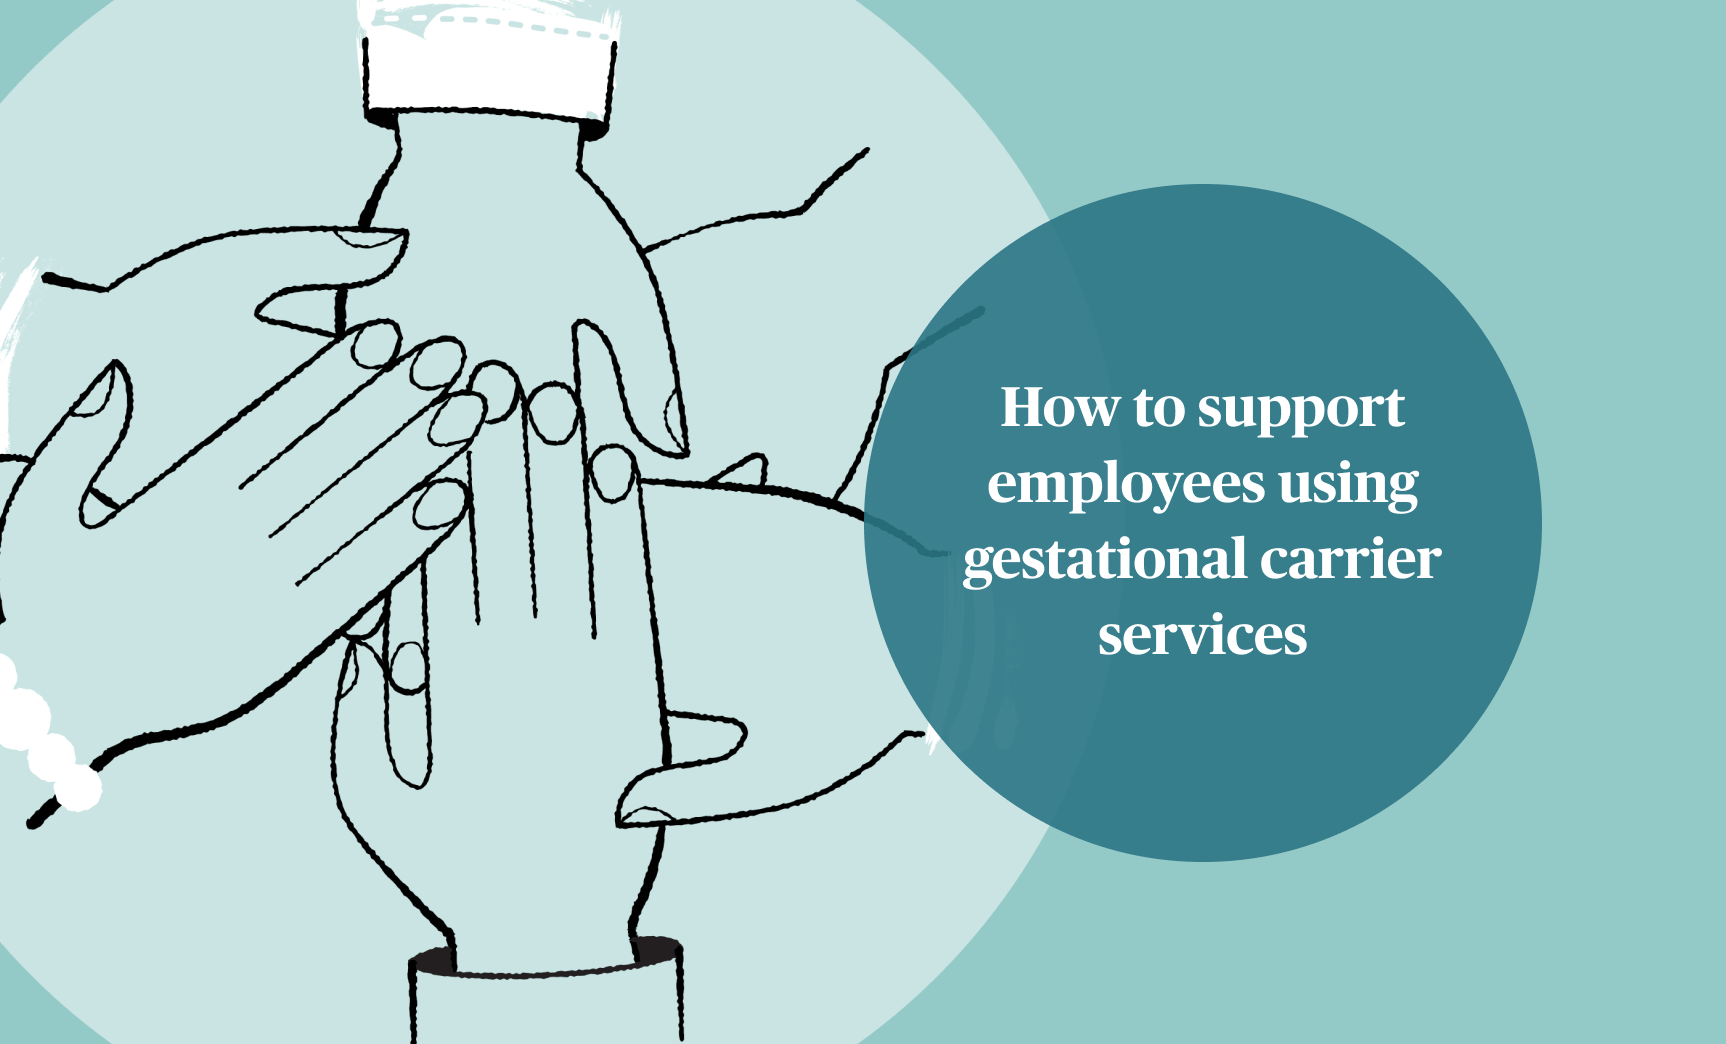 How to support employees using gestational carrier services